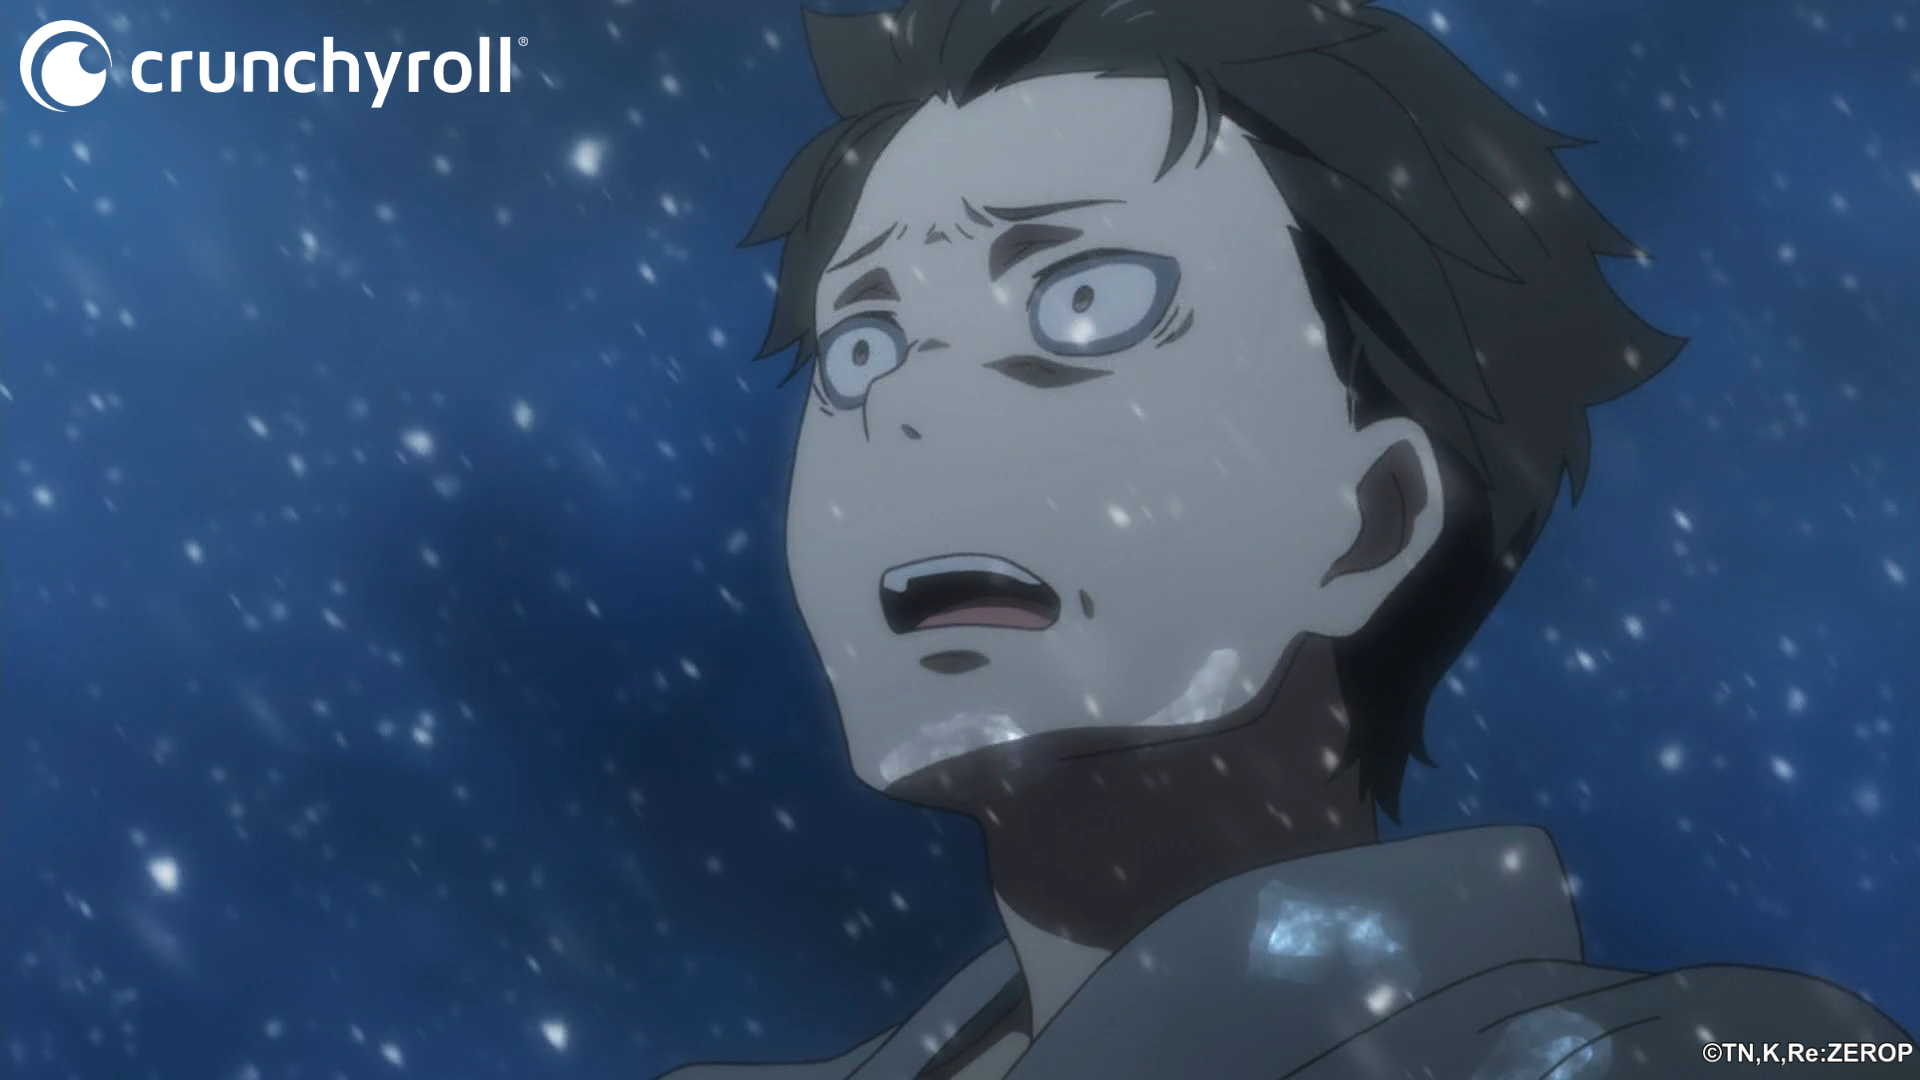 Natsuki Subaru begins to freeze solid beneath the icy wrath of Puck in a scene from the Re:ZERO -Starting Life in Another World- TV anime.